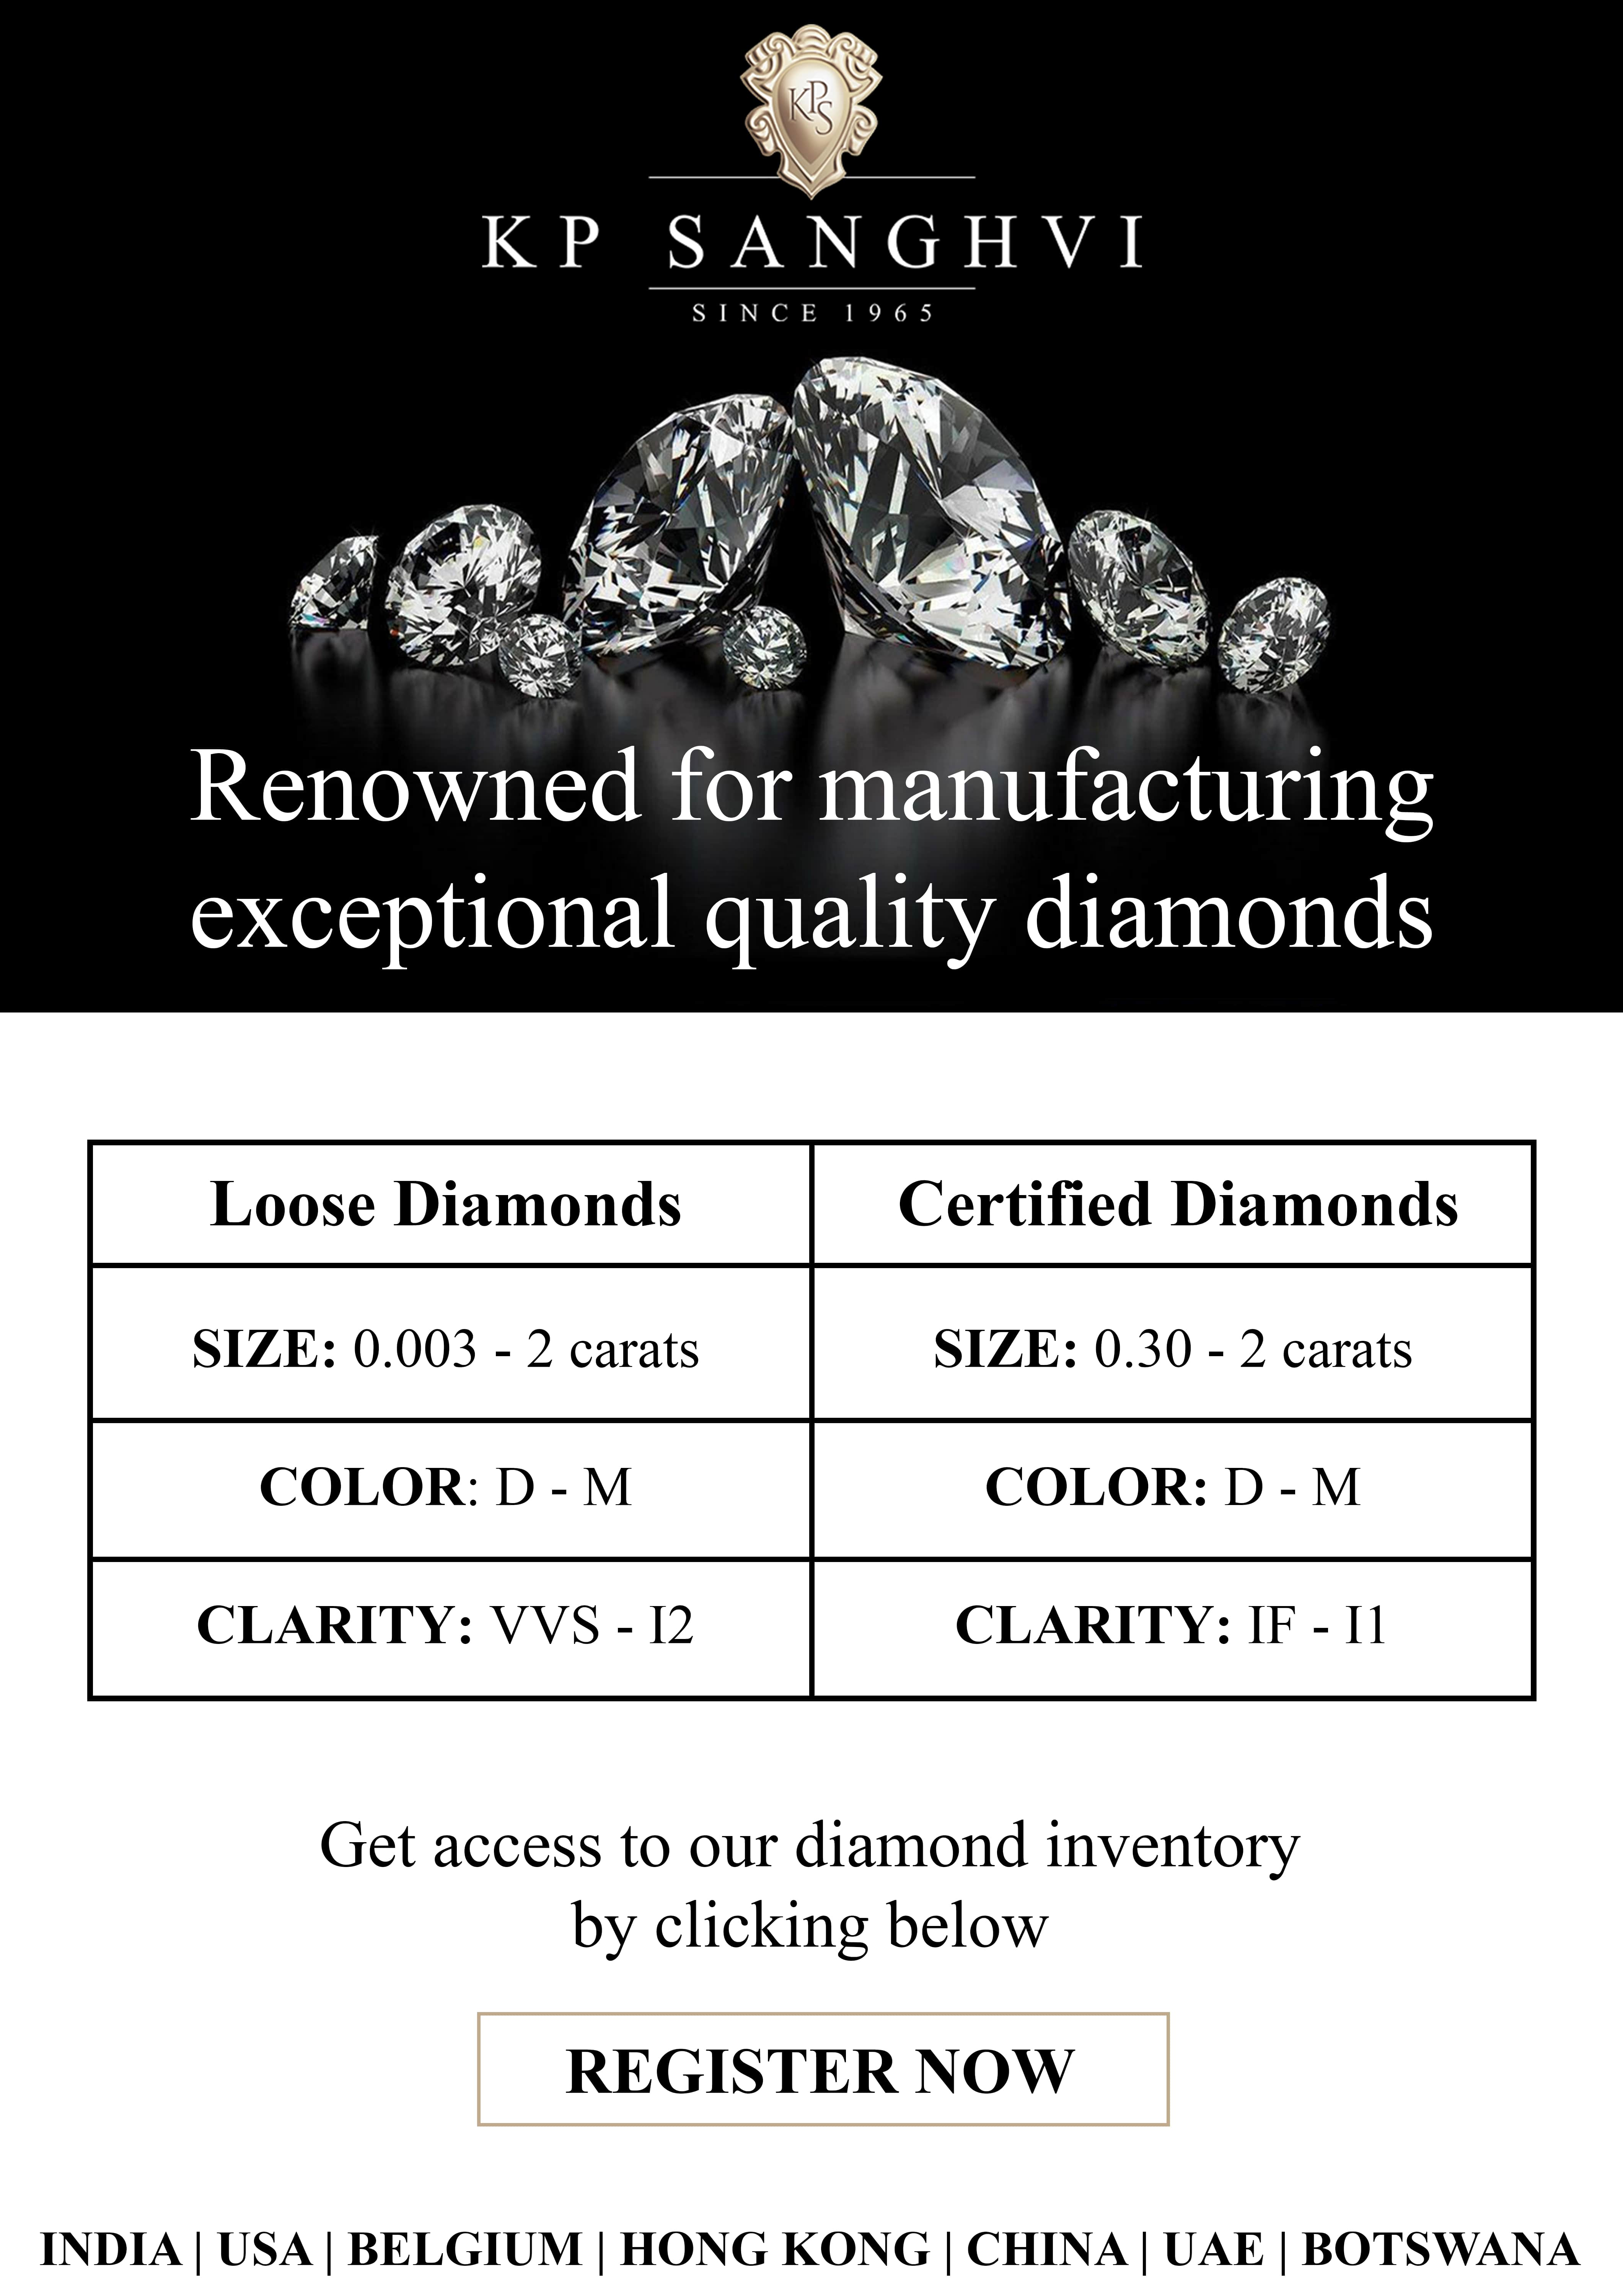 KP Sanghvi - MAP Rectangle Banner - All Pages